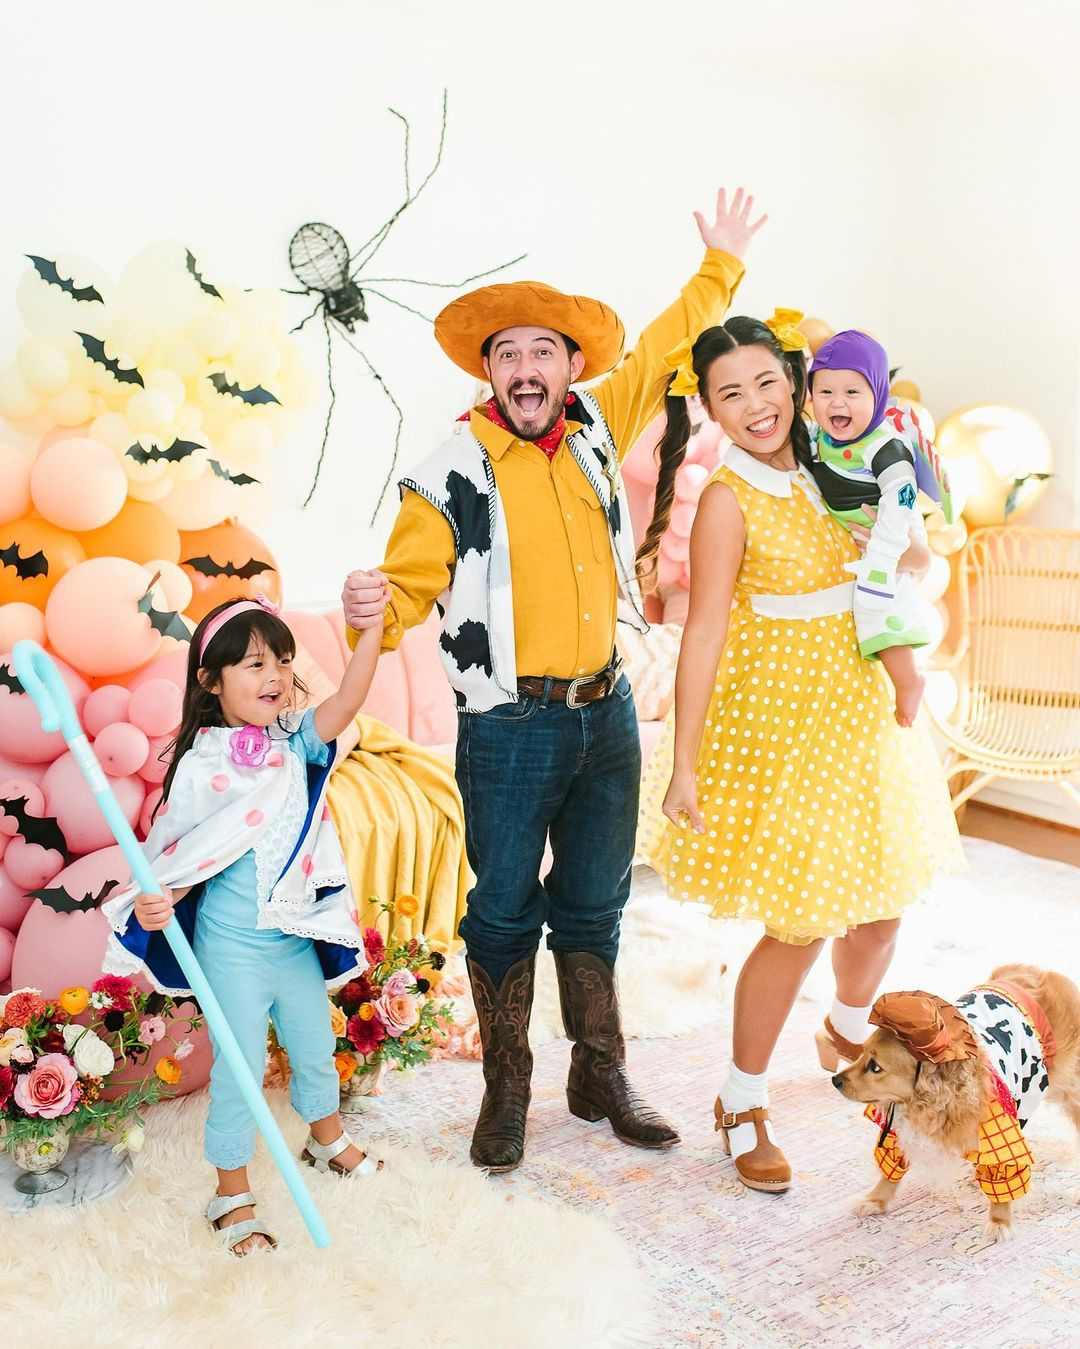 Toy Story family Halloween costume for 4